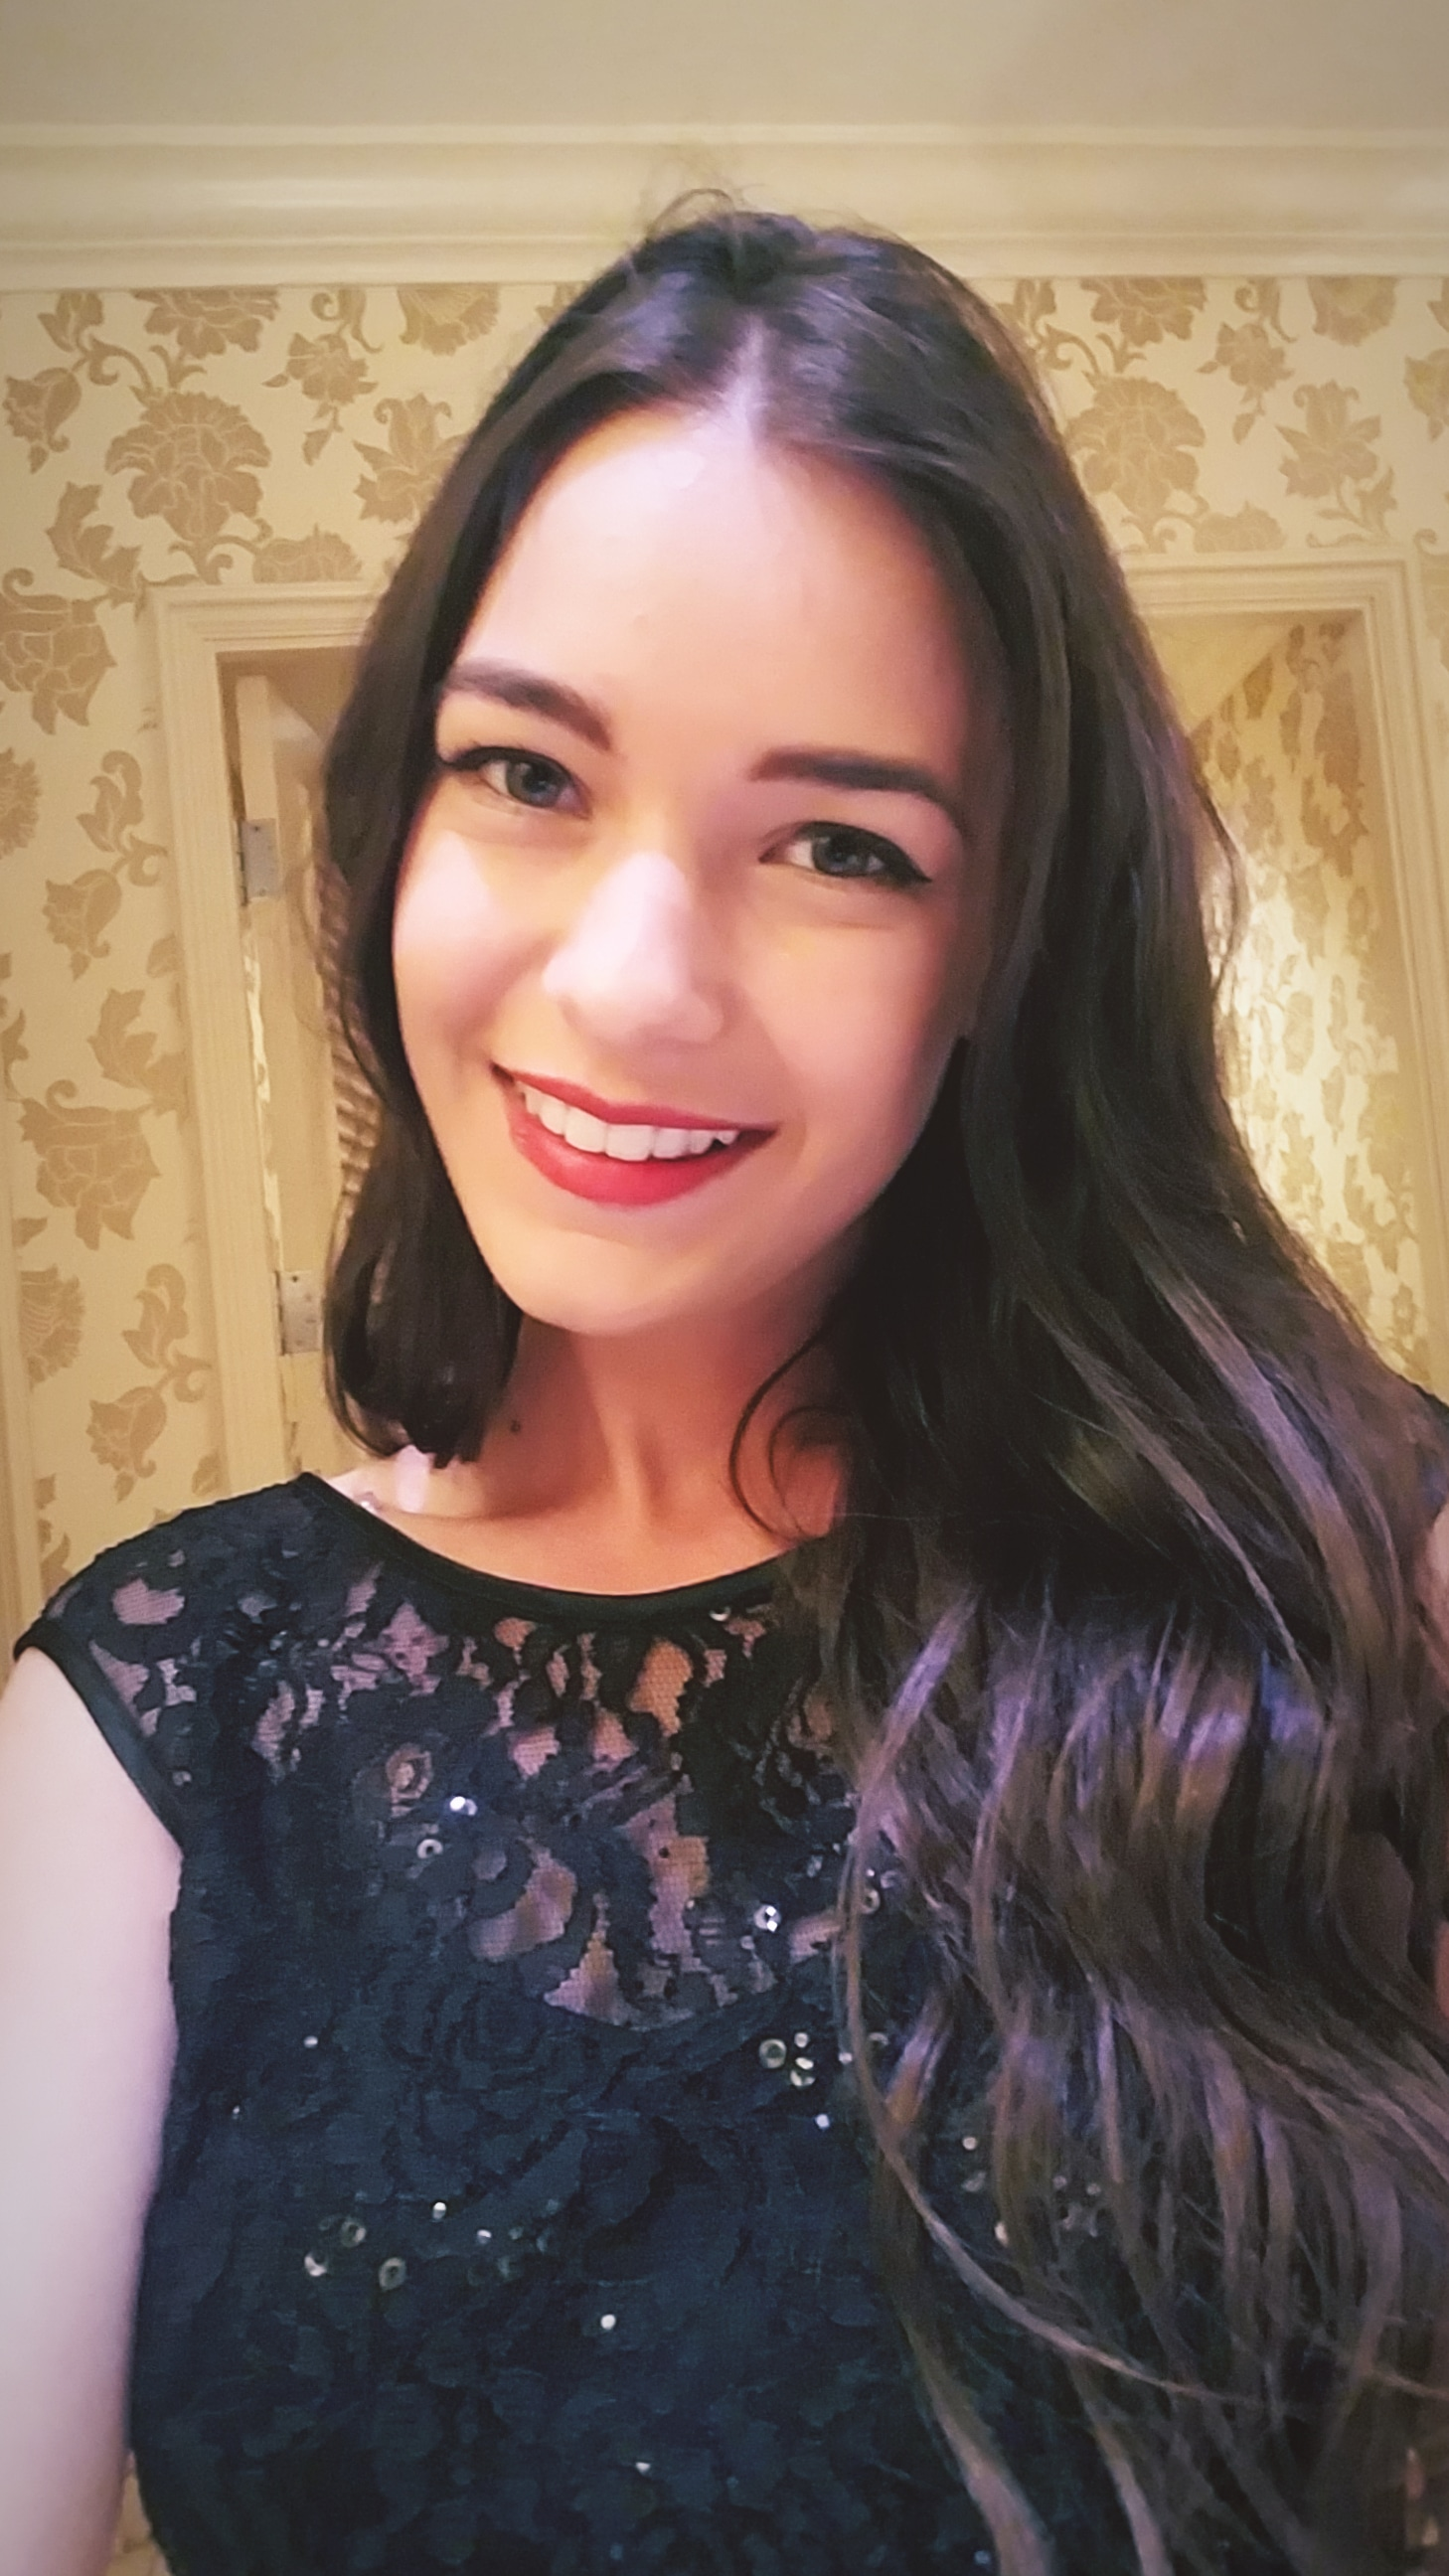 Denisa Micliuc- Piano & Voice   Denisa Micliuc will be receiving her MFA in Collaborative Piano performance at University of California, Irvine in 2019. Ms. Micliuc completed elementary, middle school and high school at the High School of Arts, Romania. In 2017, she received her Bachelor in Music degree with an emphasis in Piano Performance from Sam Houston State University. She often performs solo and collaboratively on stages across US and Europe. She is a teacher, vocal coach and pianist at the Music Academy in Yorba Linda where she often performs with the kids choir. Music and piano is her passion from an early age and she enjoys inspiring students to find joy and creativity through music.